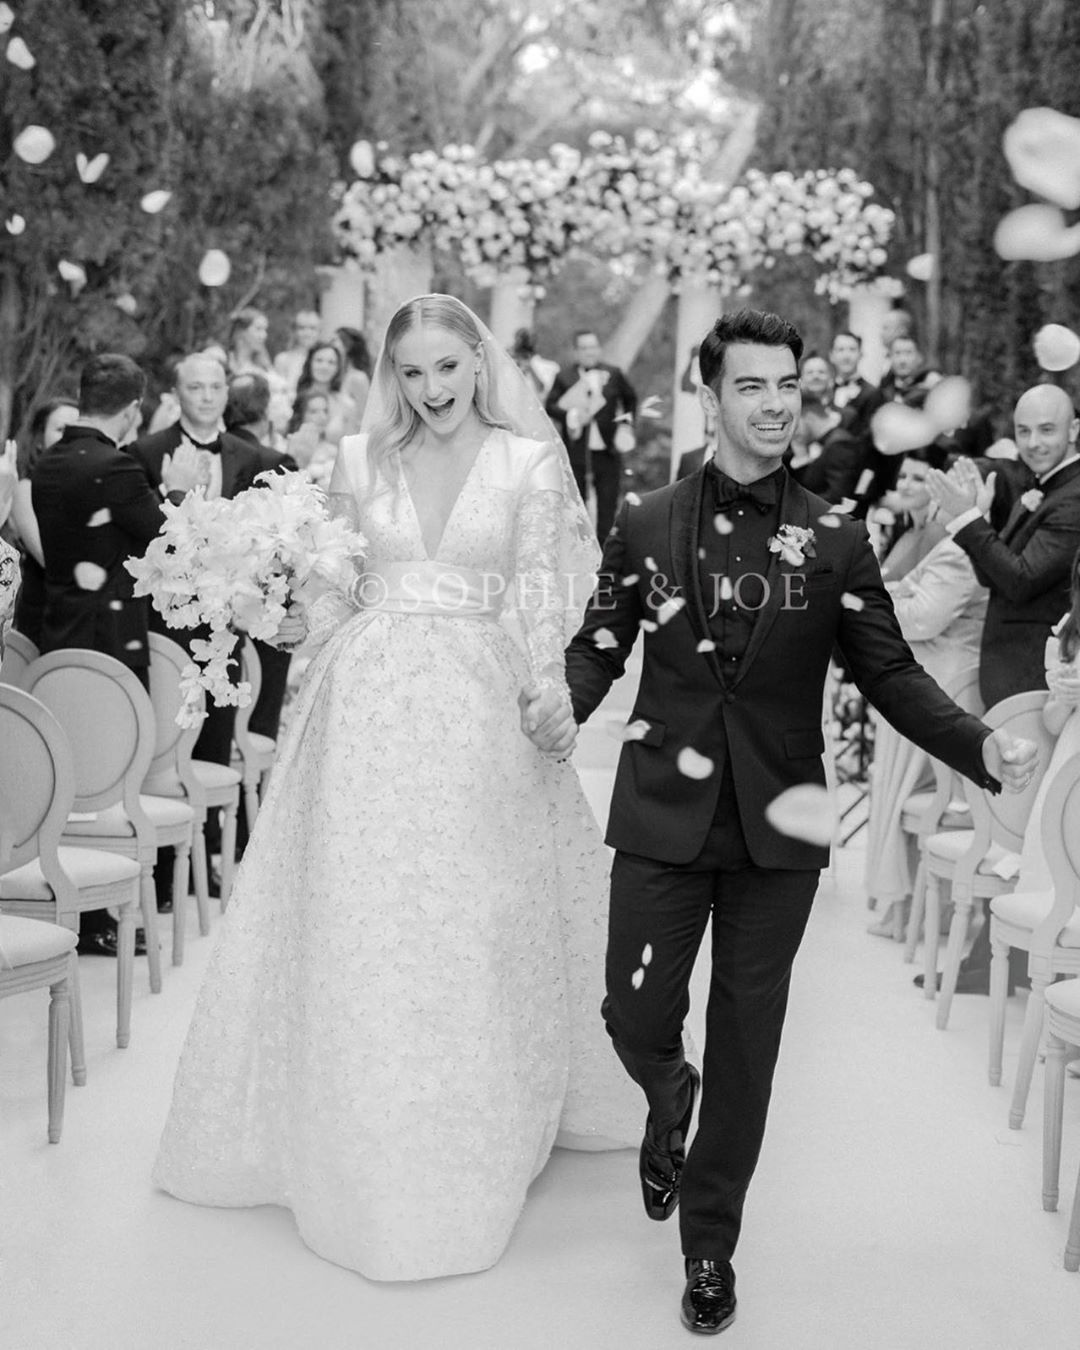 Sophie Turner & Joe Jonas just shared the First Photo from their Official Wedding!